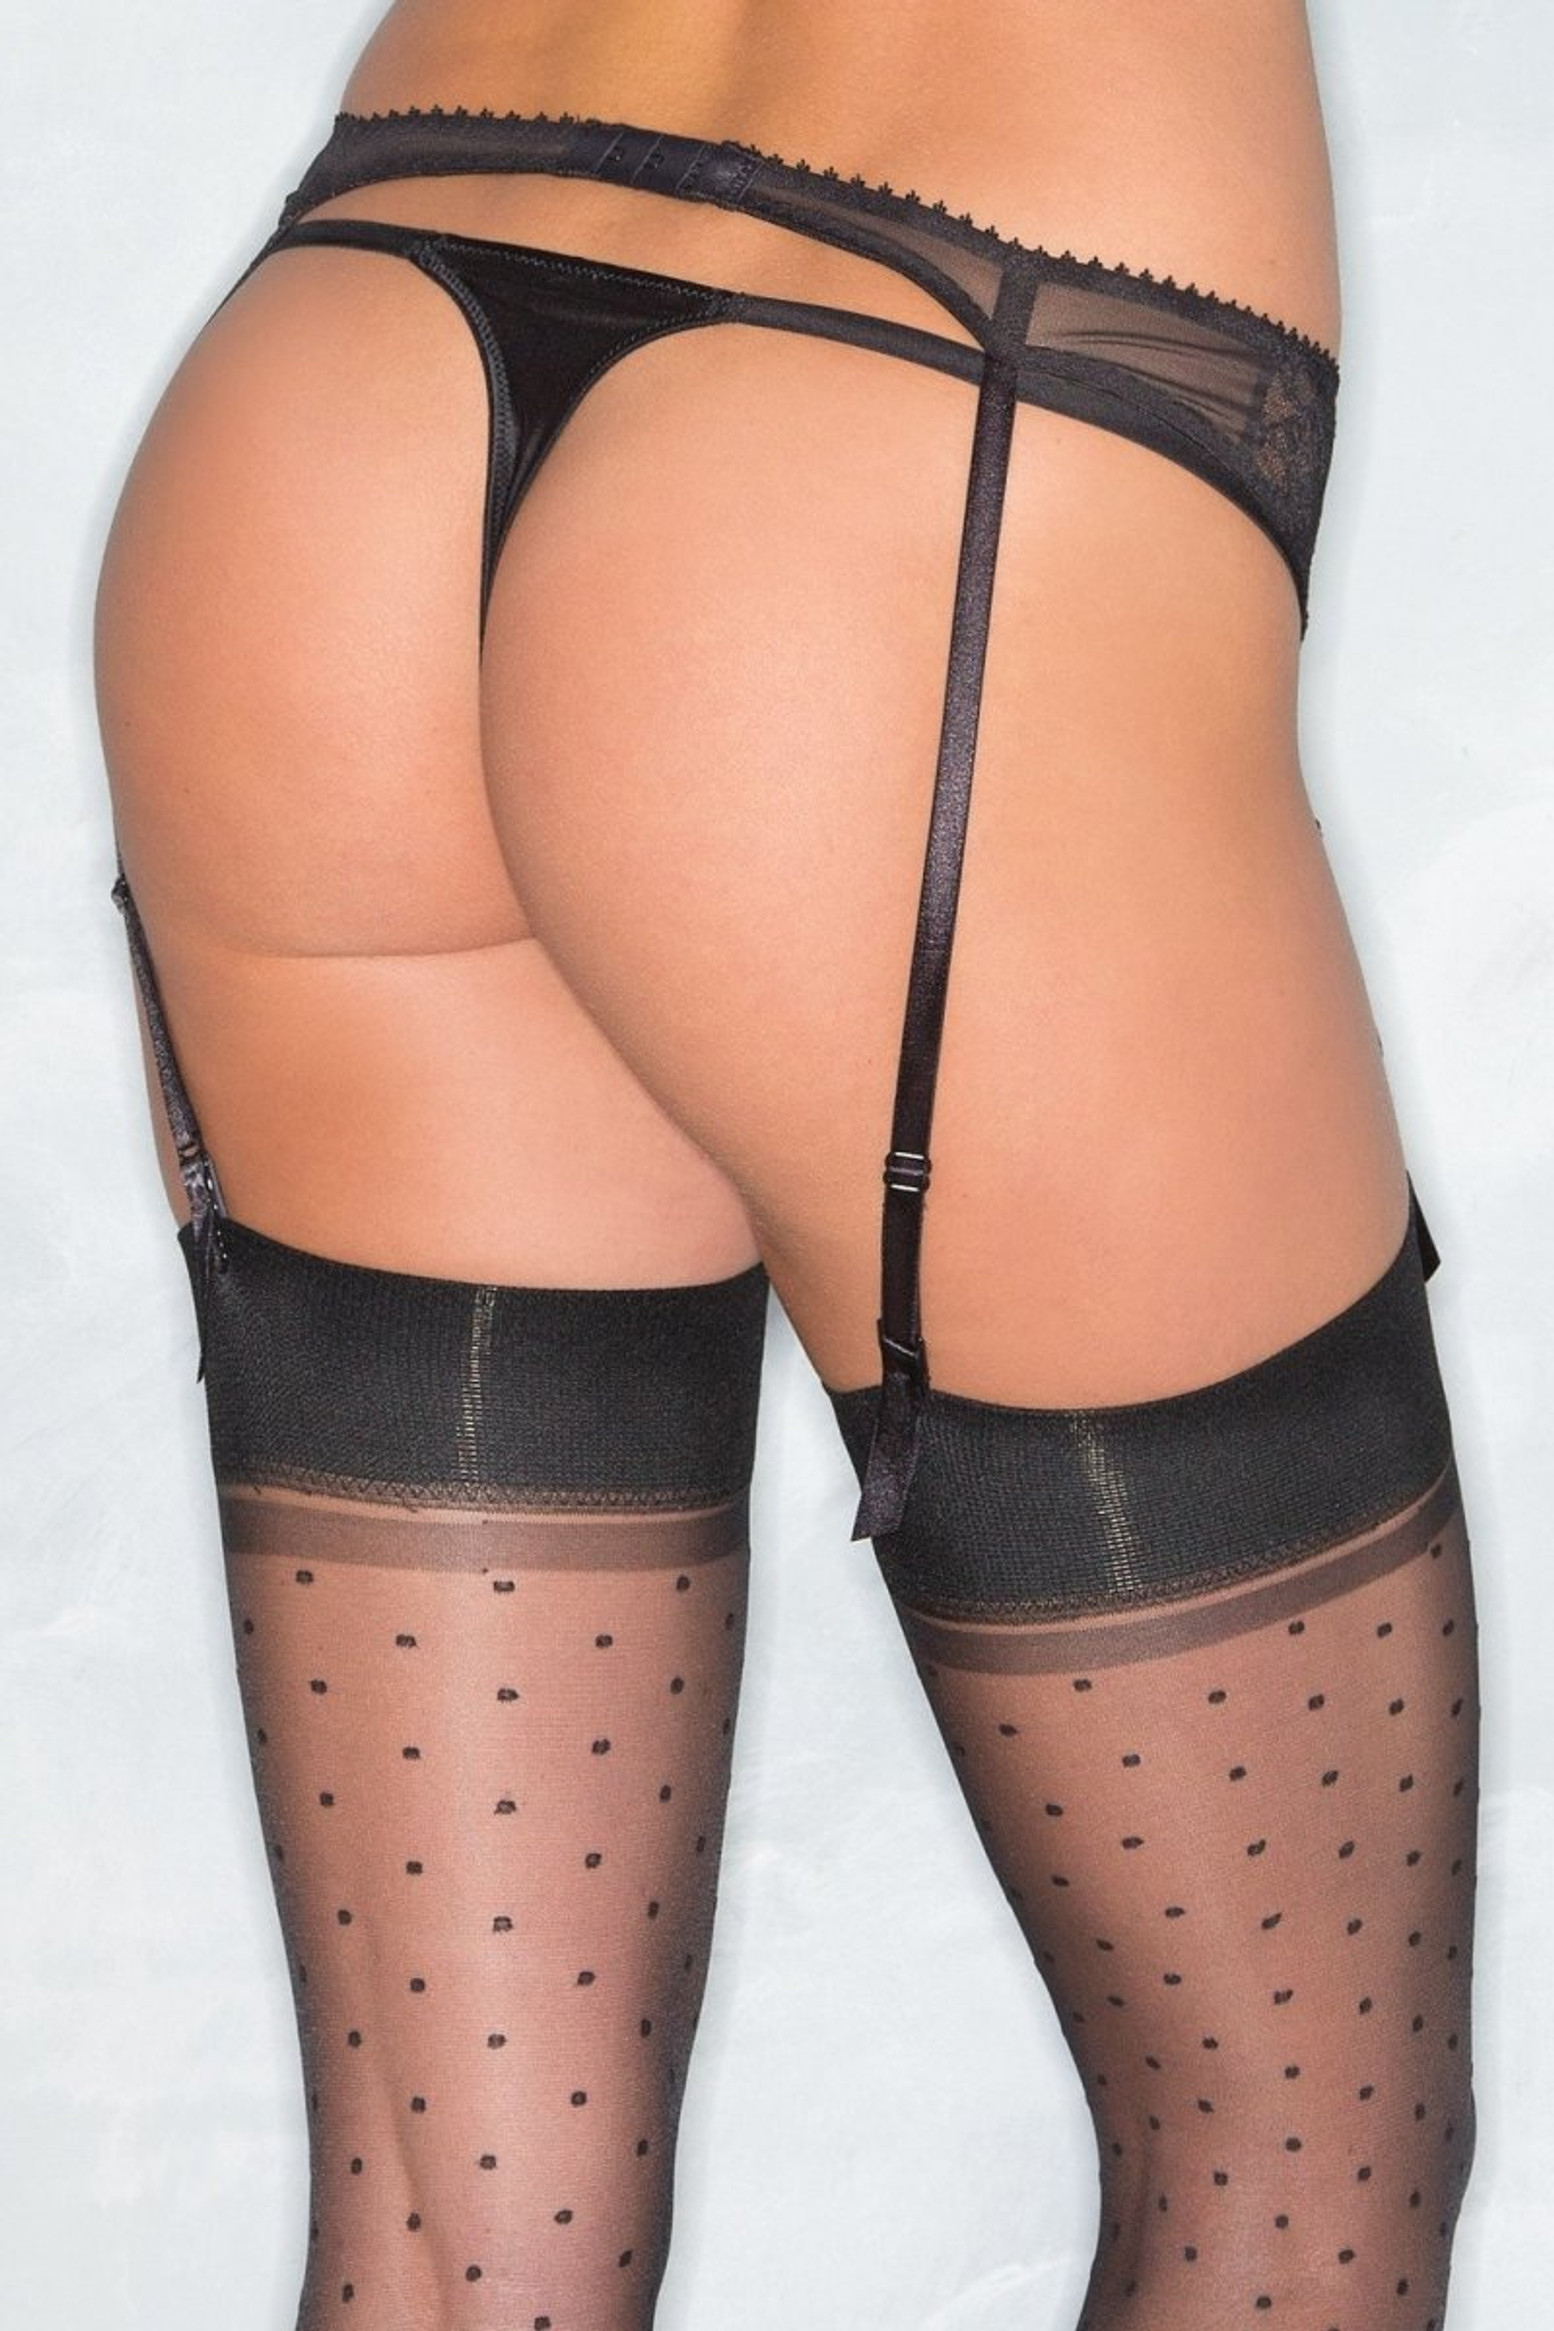 BW1539BK Lace Garter Belt - Black